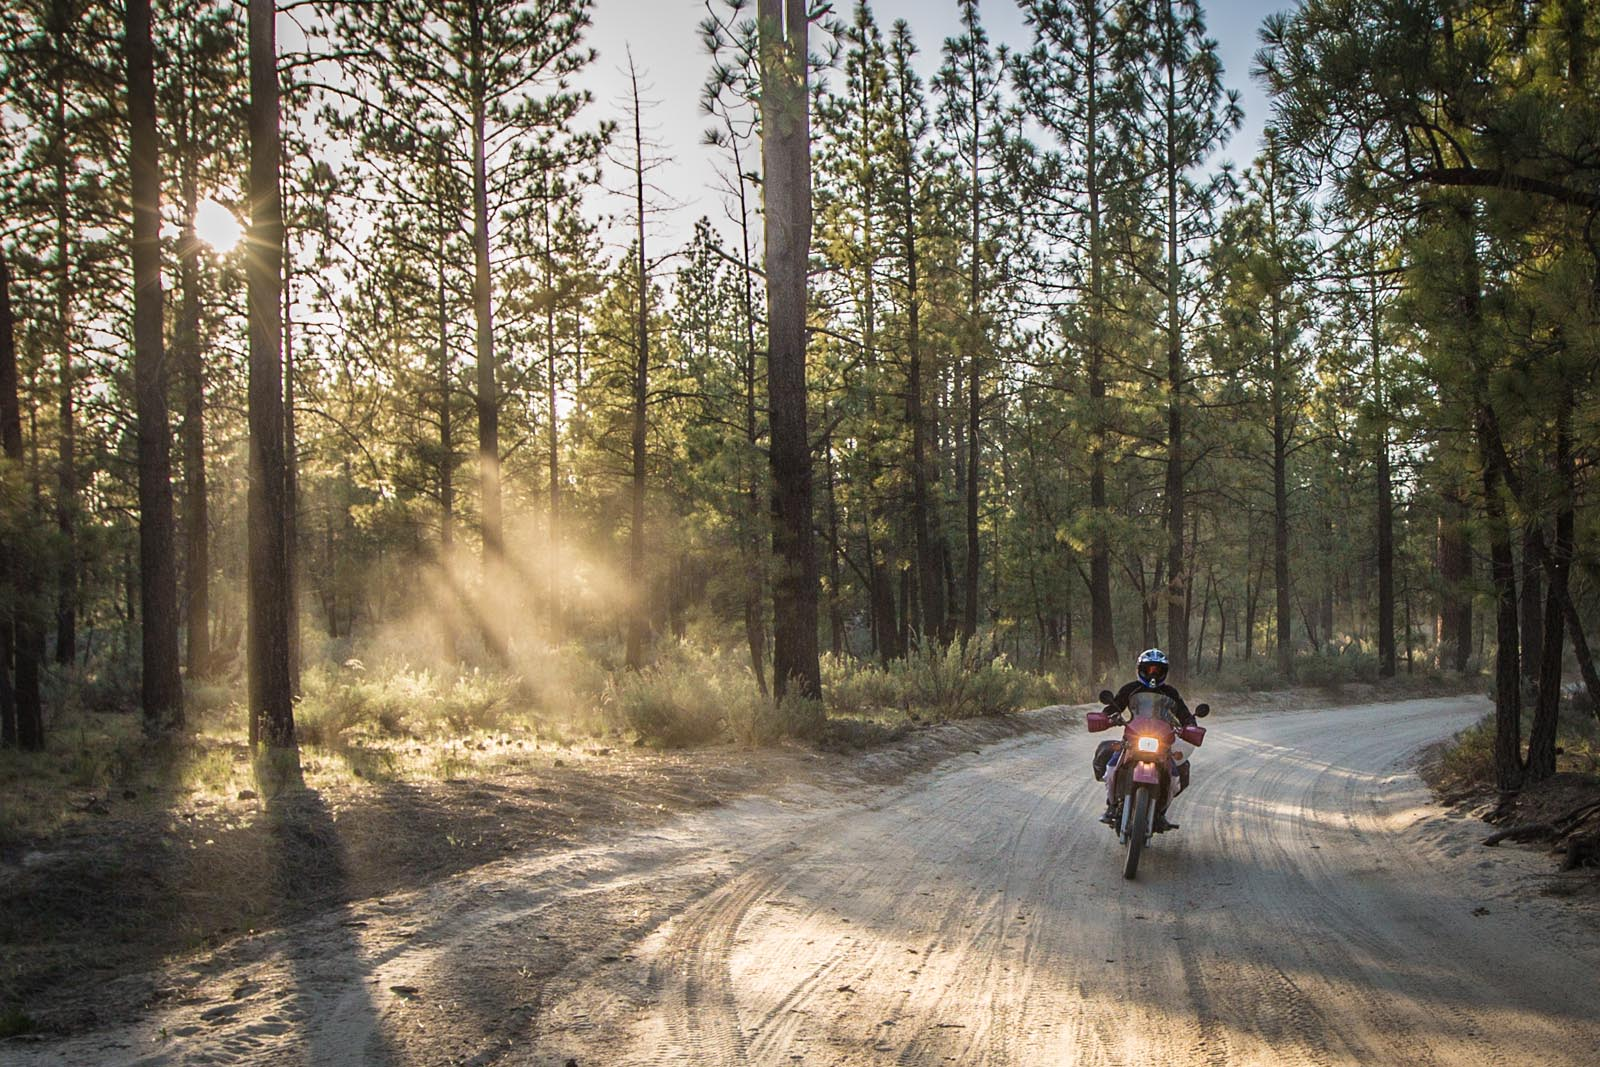 Just look how the sun rays capture that cloud of dust that now covers Becky and everything on her bike.